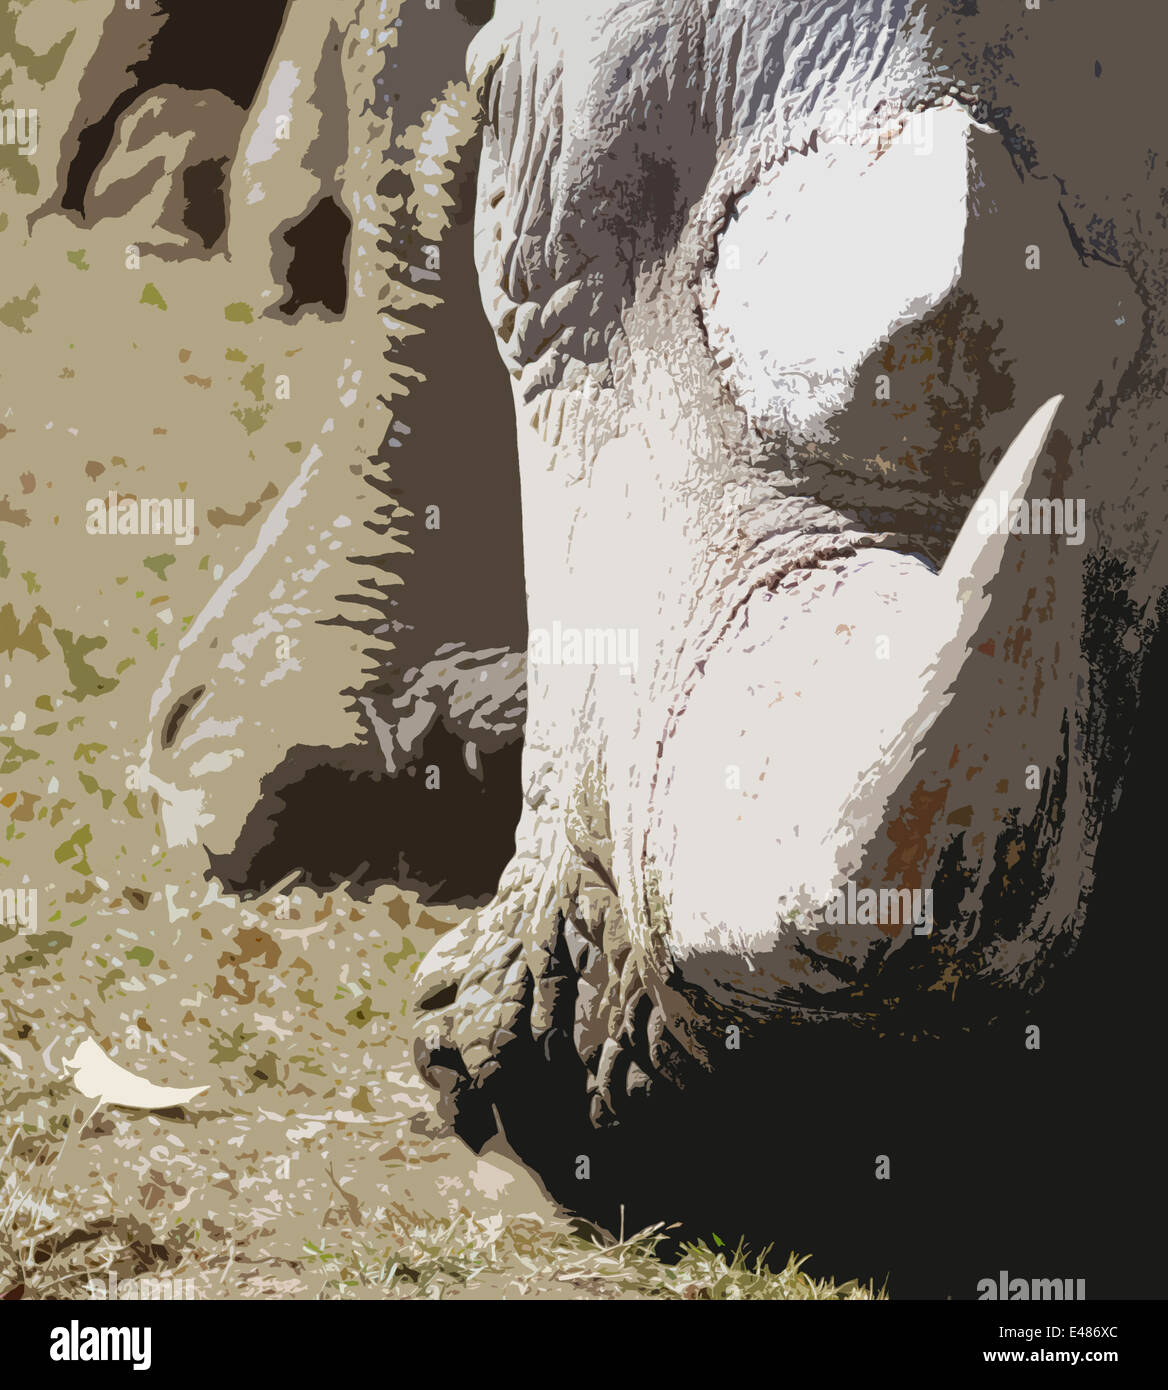 An artistic image of a white rhino with a sharp horn that looks like it is about to charge. Head to the ground, Stock Photo